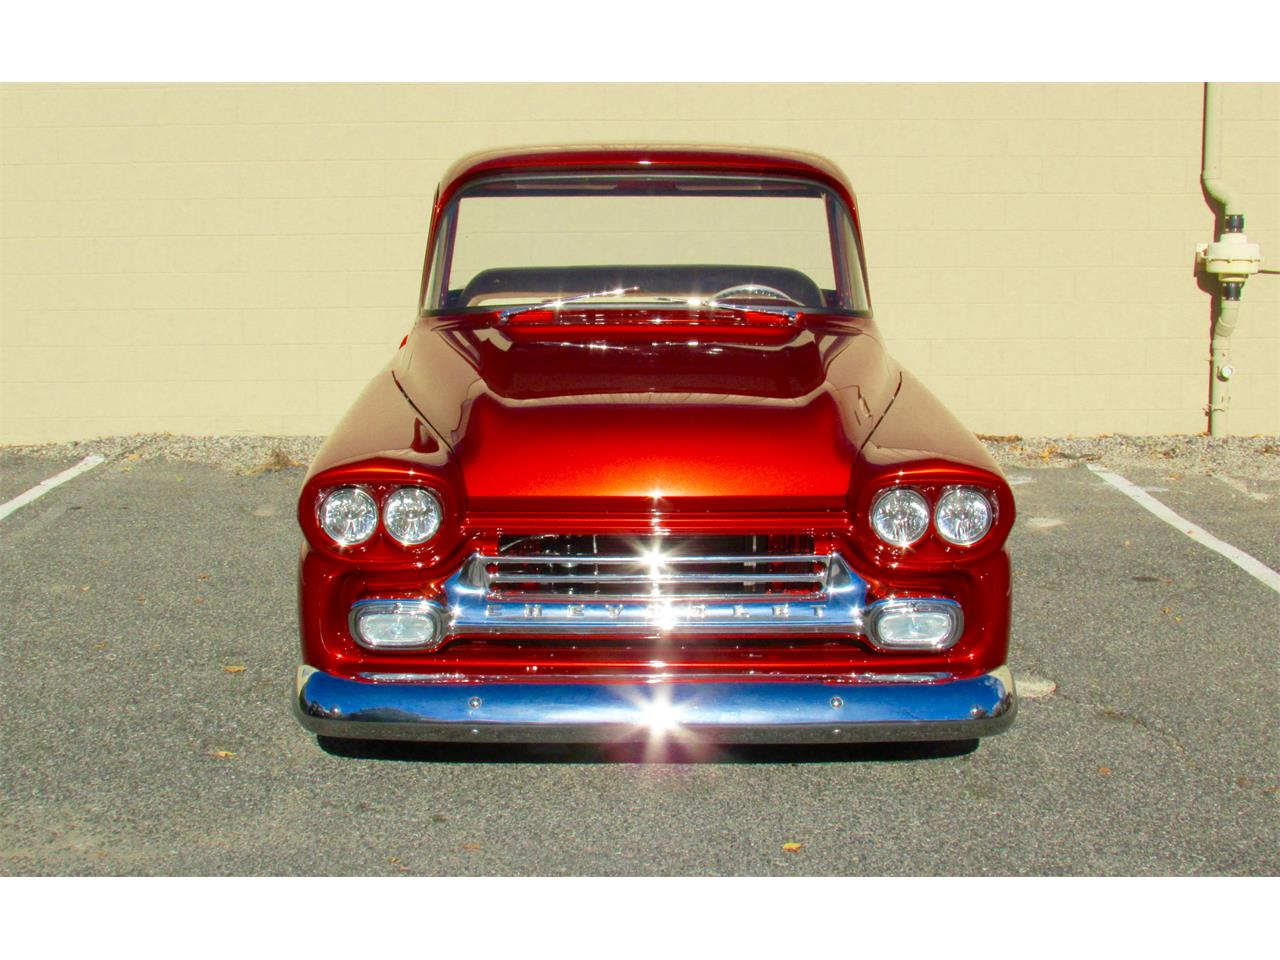 Large Picture of Classic 1959 Chevrolet Fleetside Custom Pickup Truck  - $169,000.00 Offered by a Private Seller - JPTV